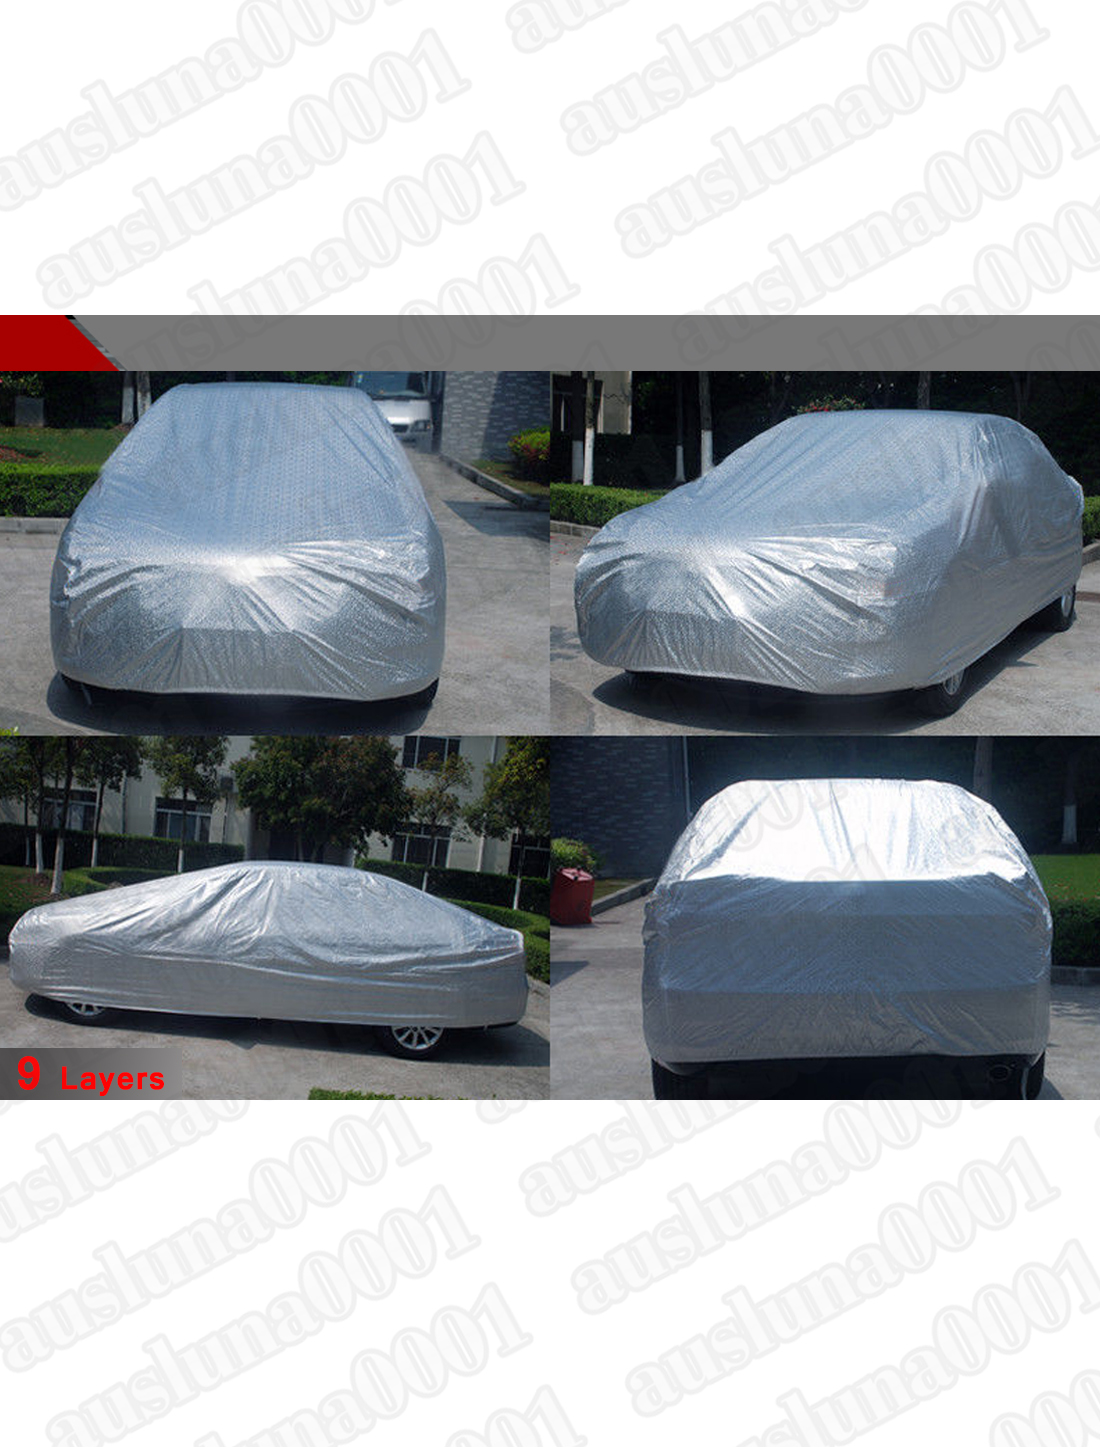 9layers car cover aluminum outdoor seamless waterproof for Mercedes benz car covers